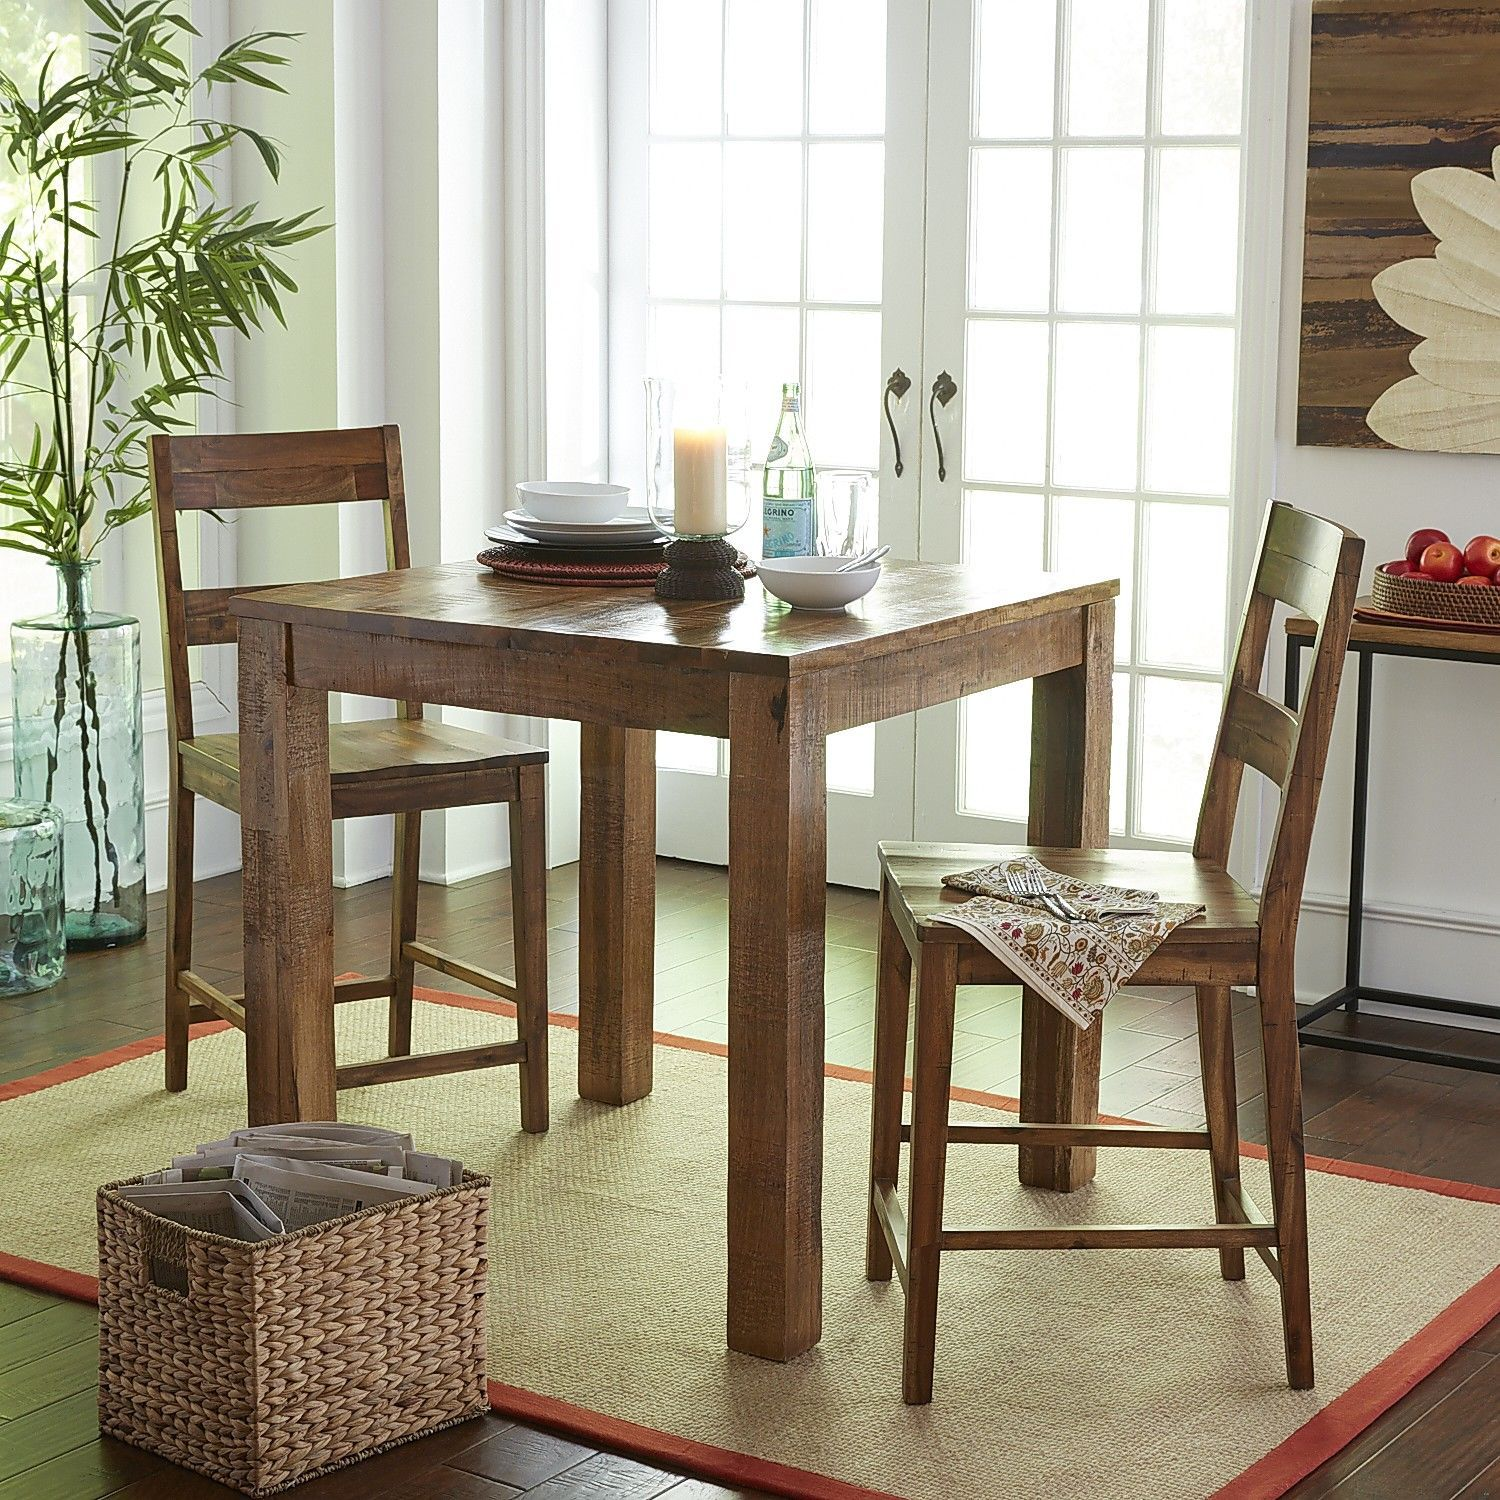 Wonderful Build Your Own Parsons Java Counter Table Collection